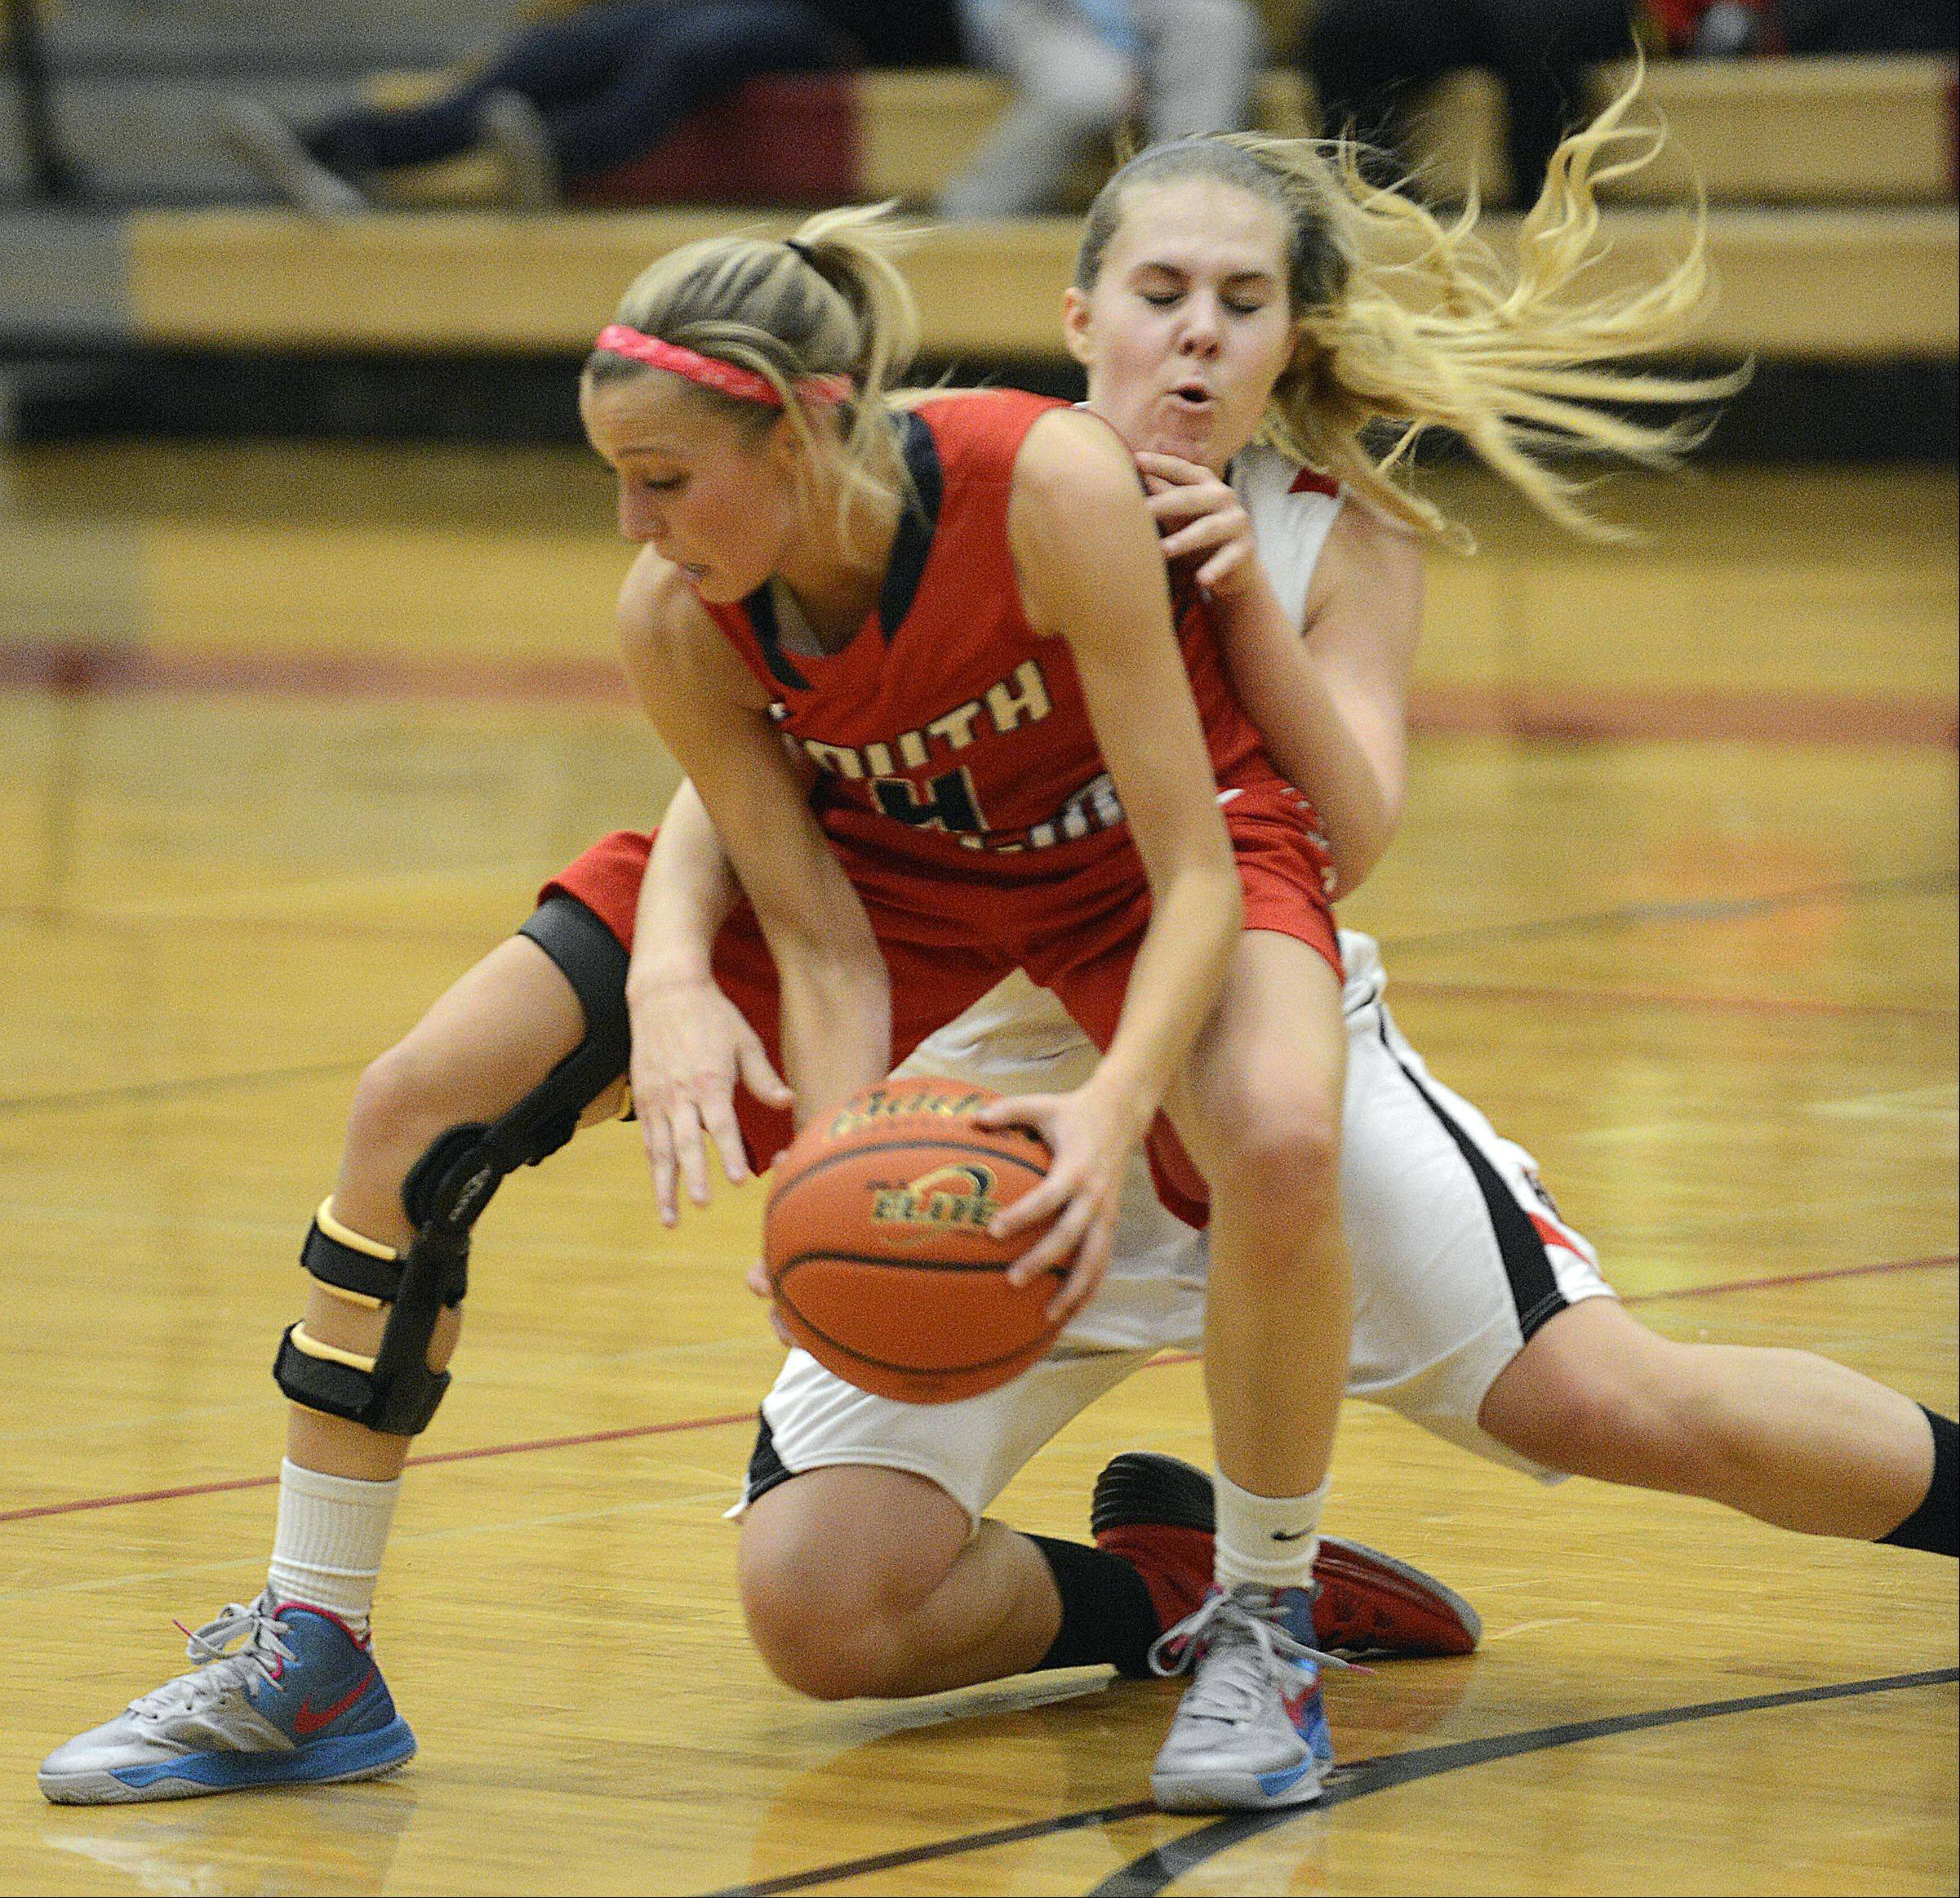 South Elgin's Savanah Uveges backs into Huntley's Ali Andrews Wednesday in Huntley.